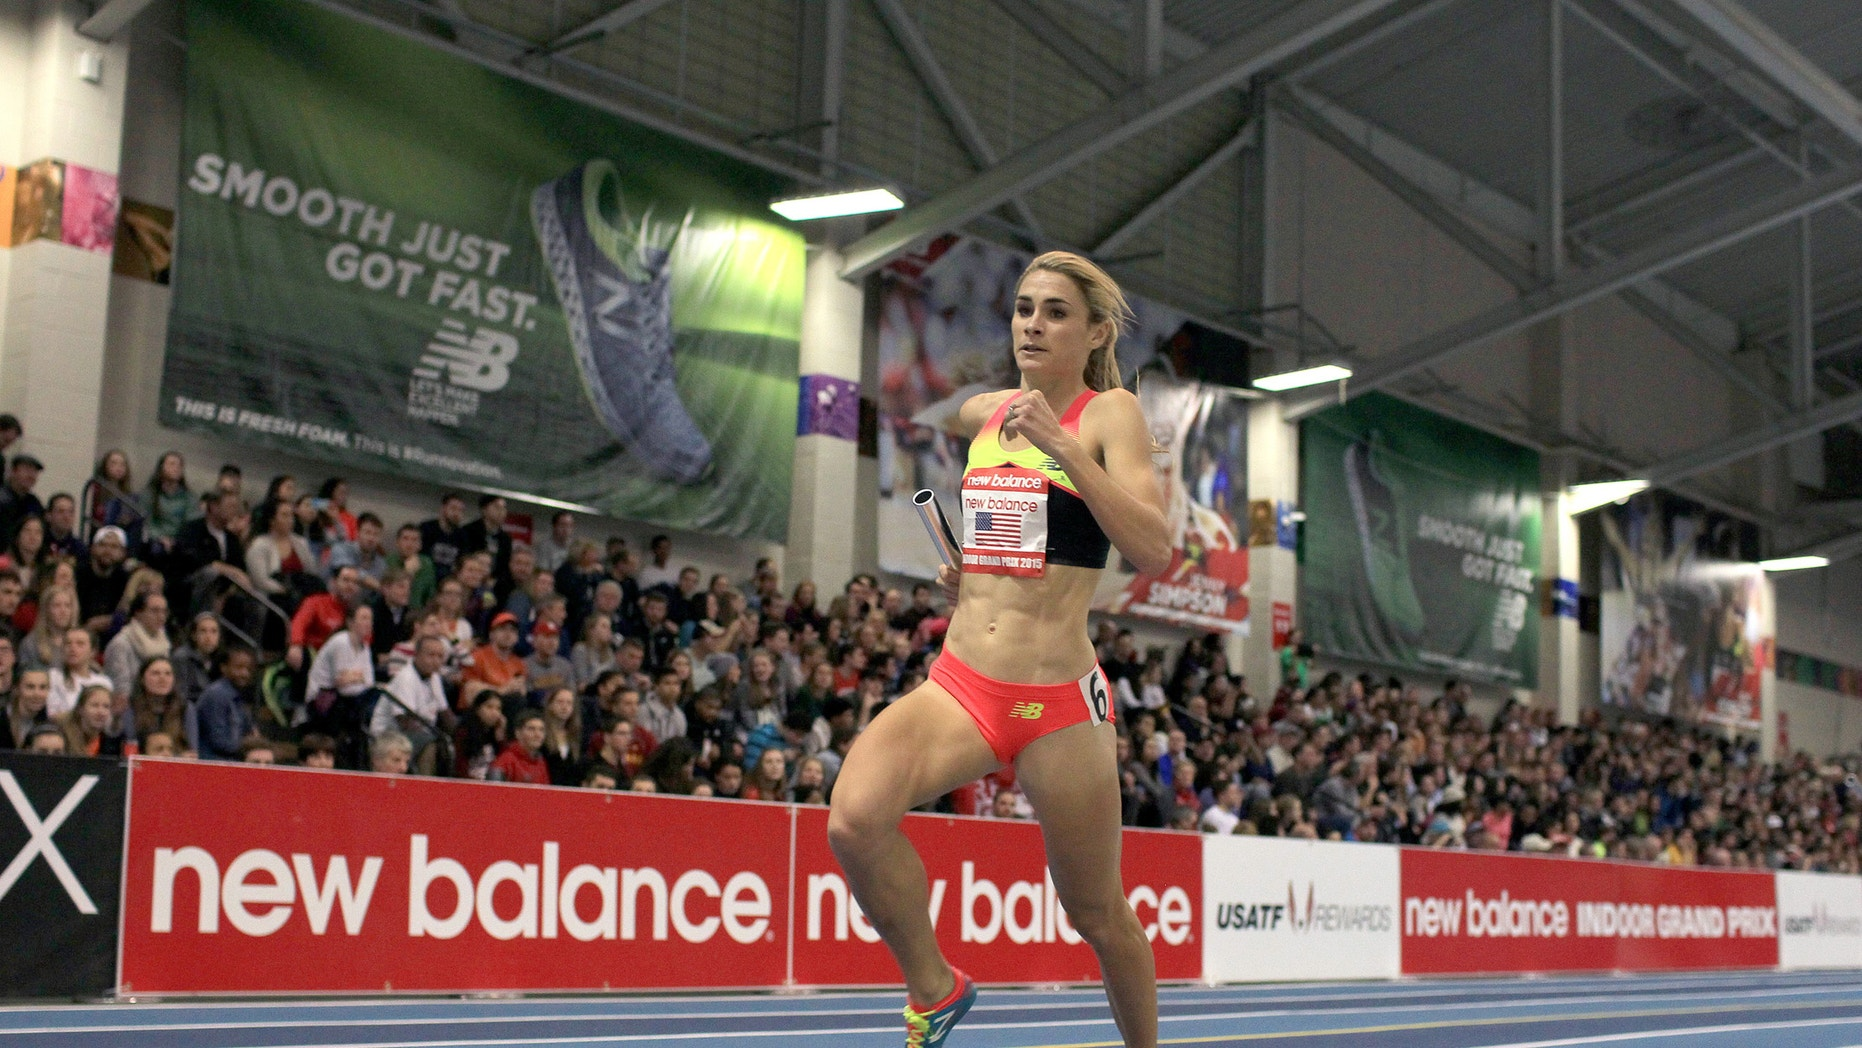 Sarah Brown competes in the New Balance Indoor Grand Prix in Boston on February 7, 2015. Photo courtesy of New Balance.